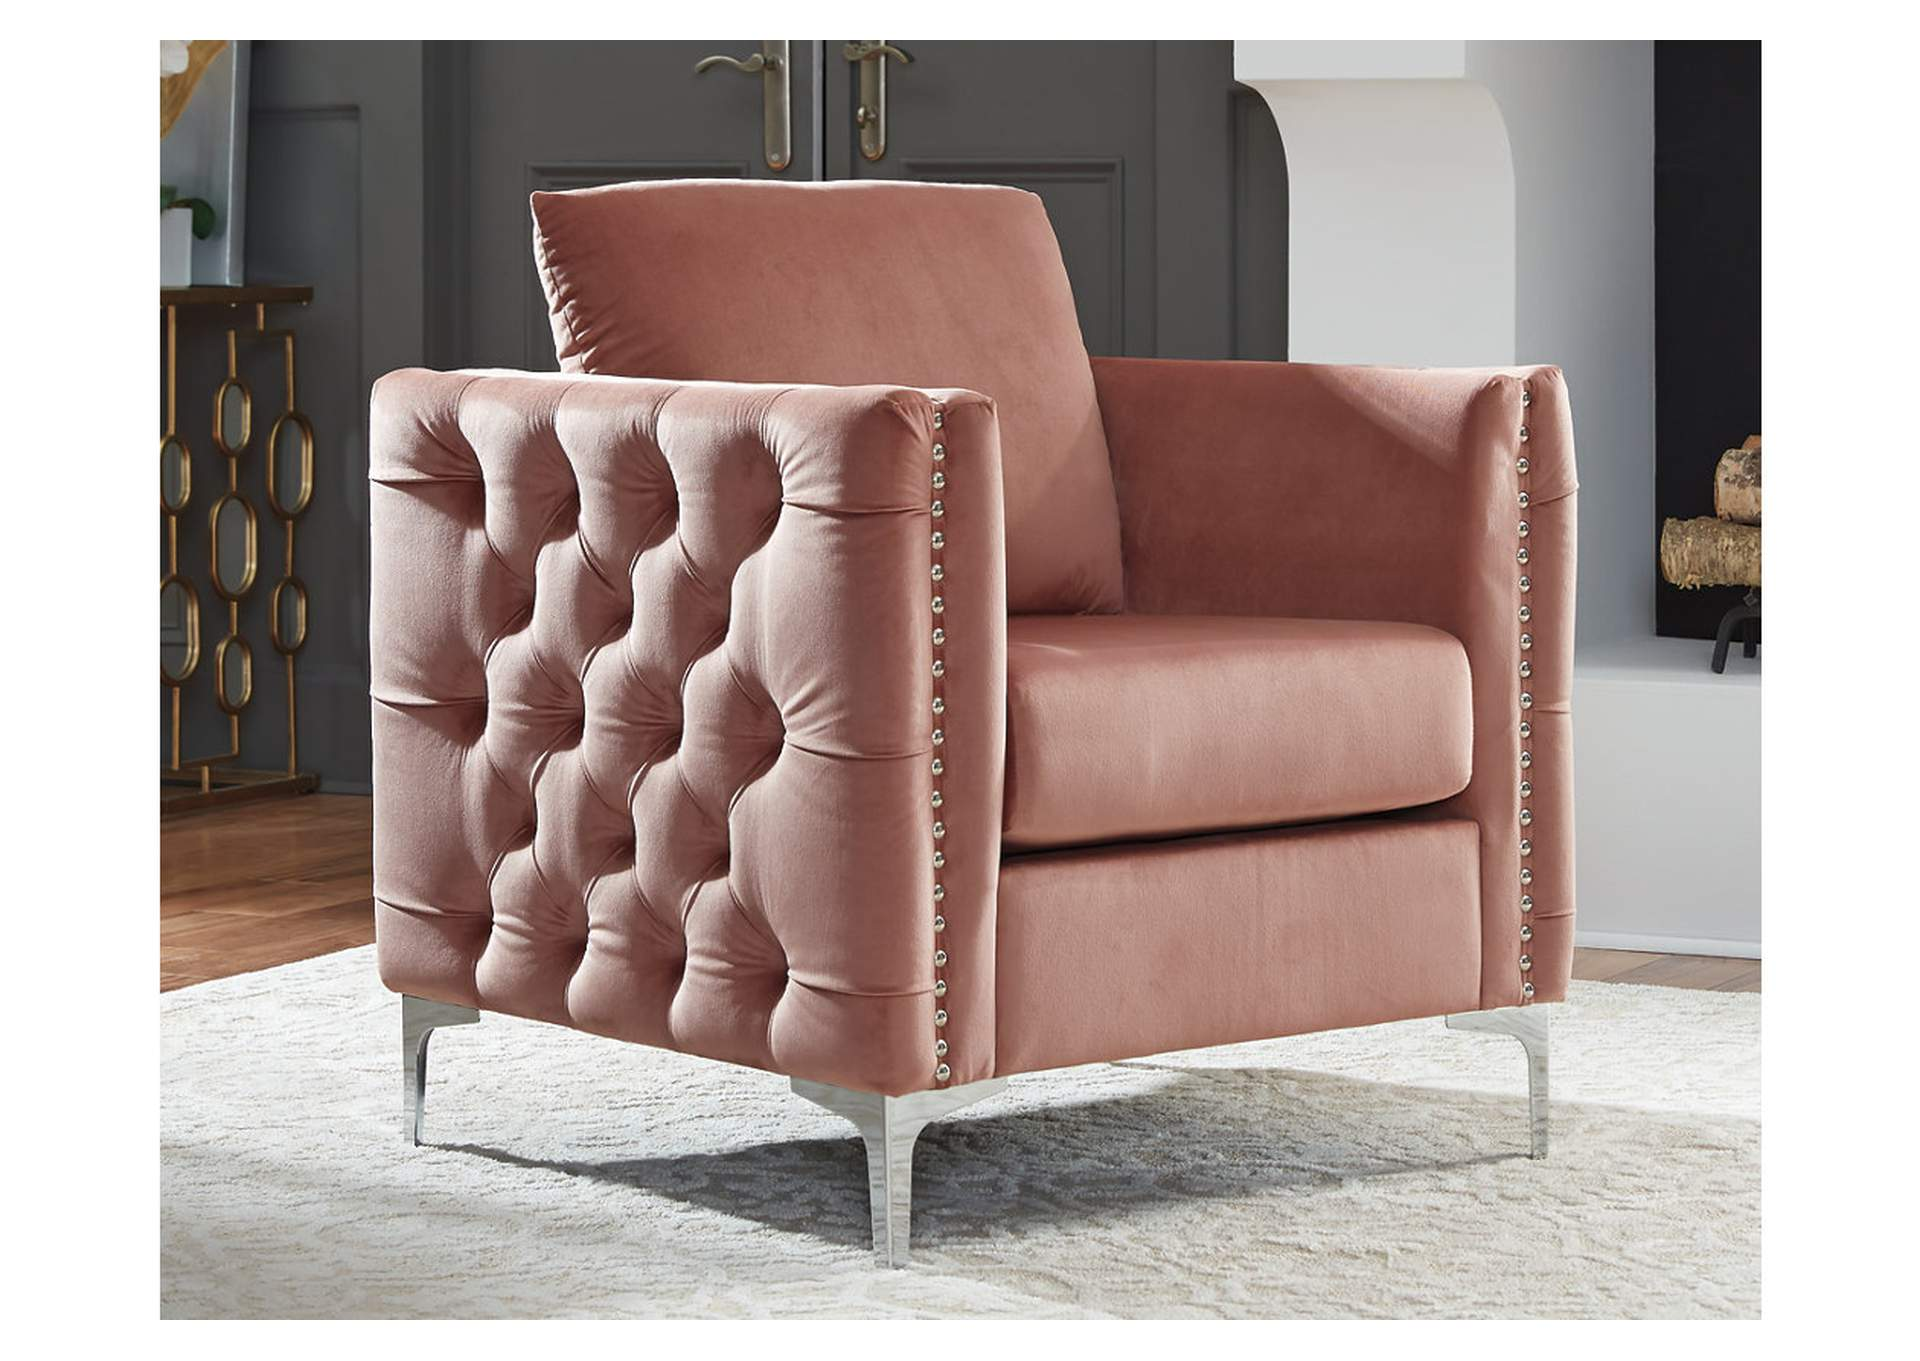 Lizmont Blush Pink Accent Chair,Direct To Consumer Express